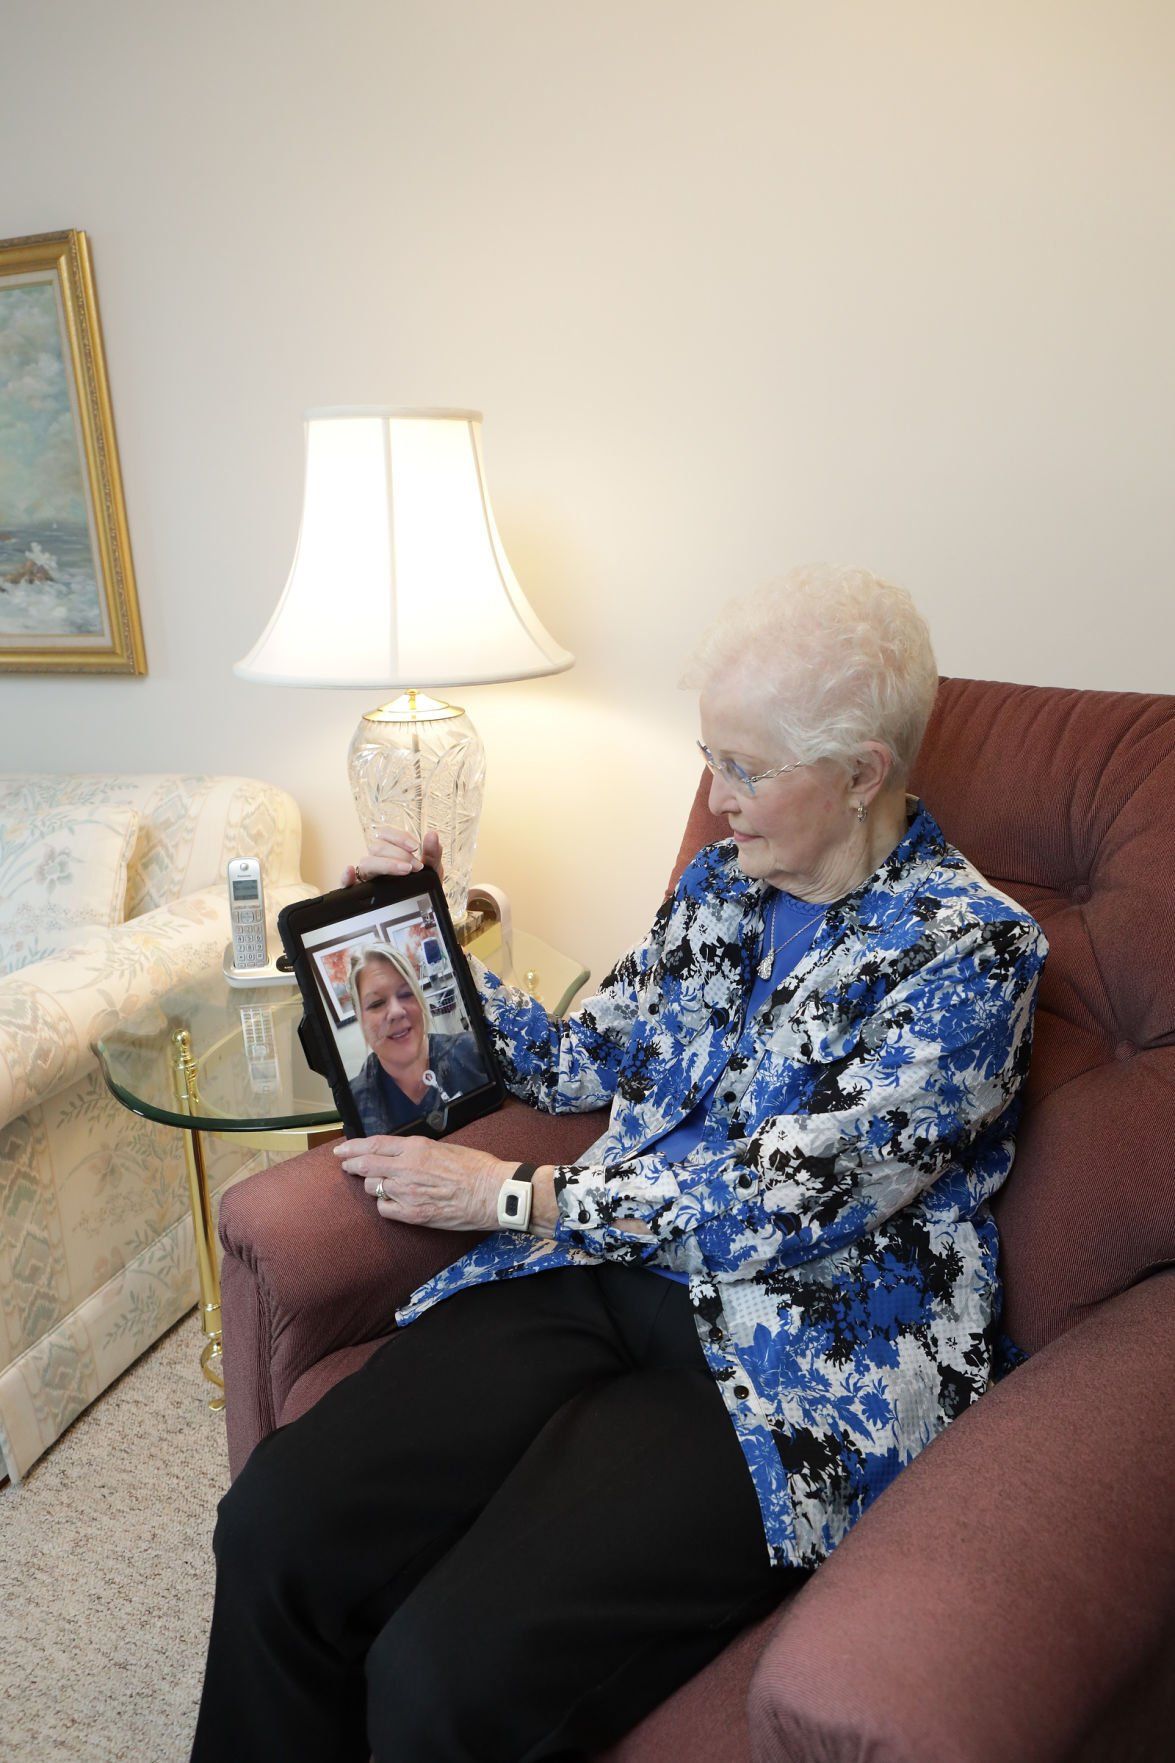 Virtual visits add convenience while keeping care real for senior living residents